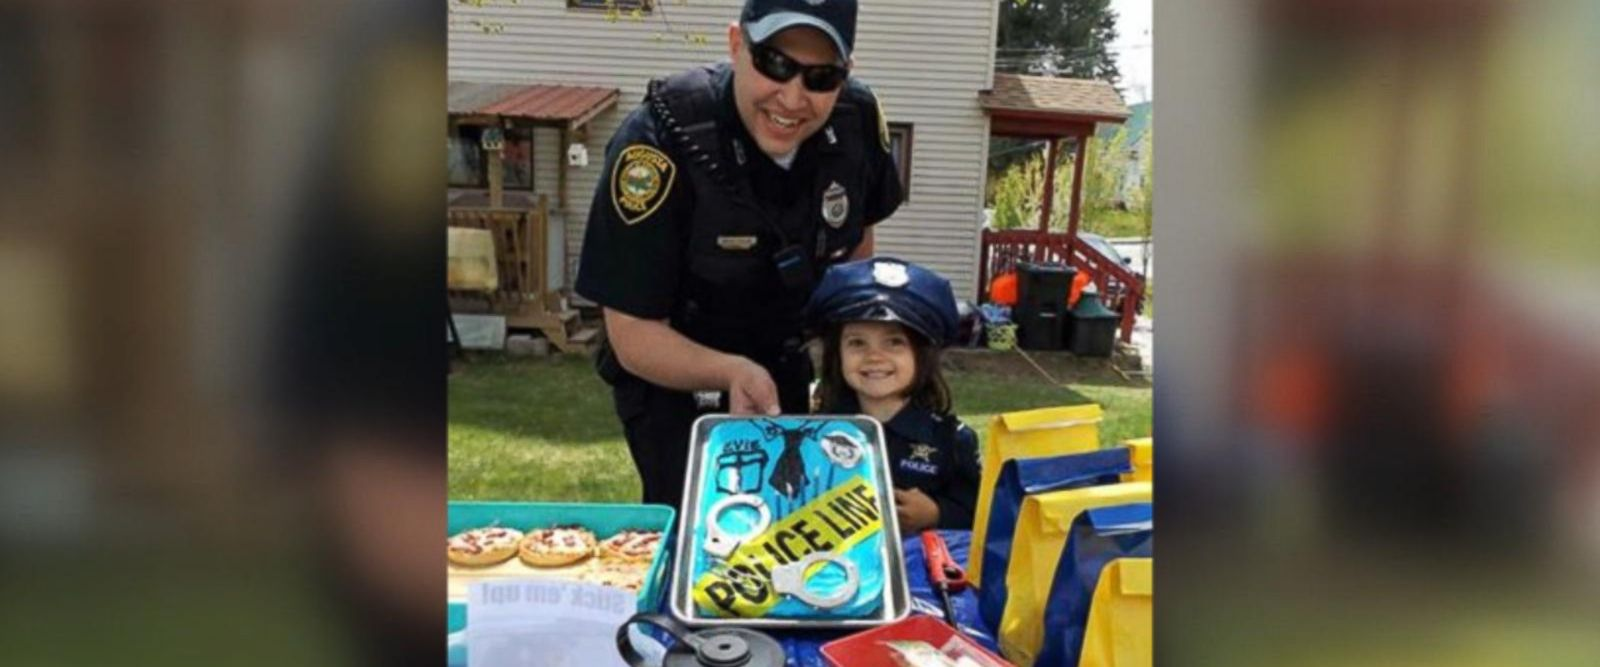 VIDEO: Little girl's favorite officer attends her police-themed birthday party